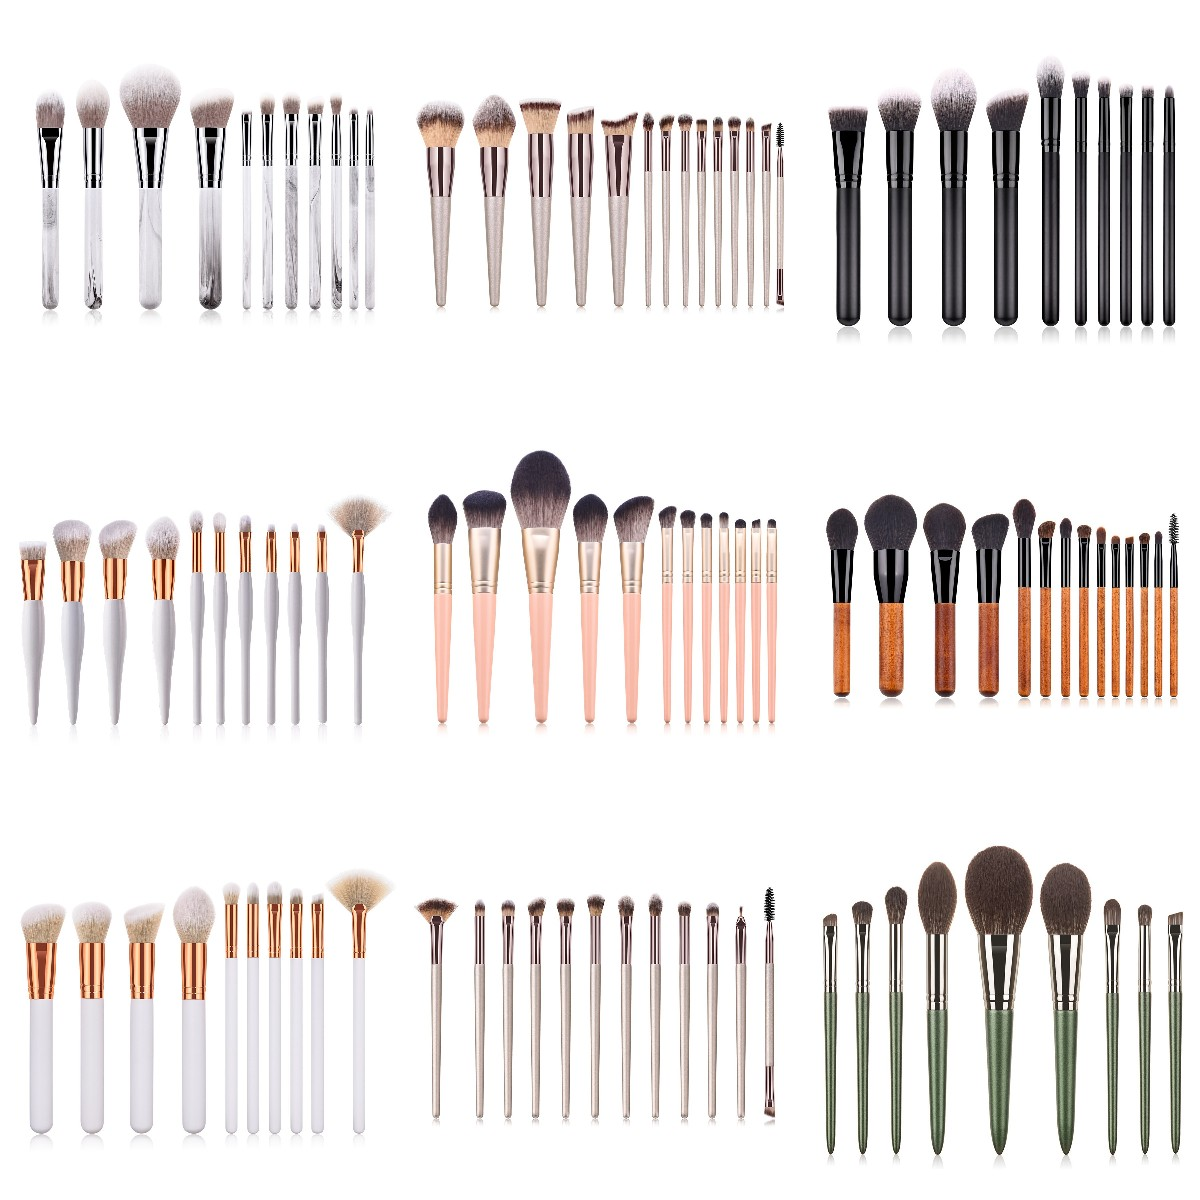 14/12/9PCS Professional Colorful Makeup Brush Set Powder Eye Face Brushes Set Foundation Eyebrow Make Up Brushes Set